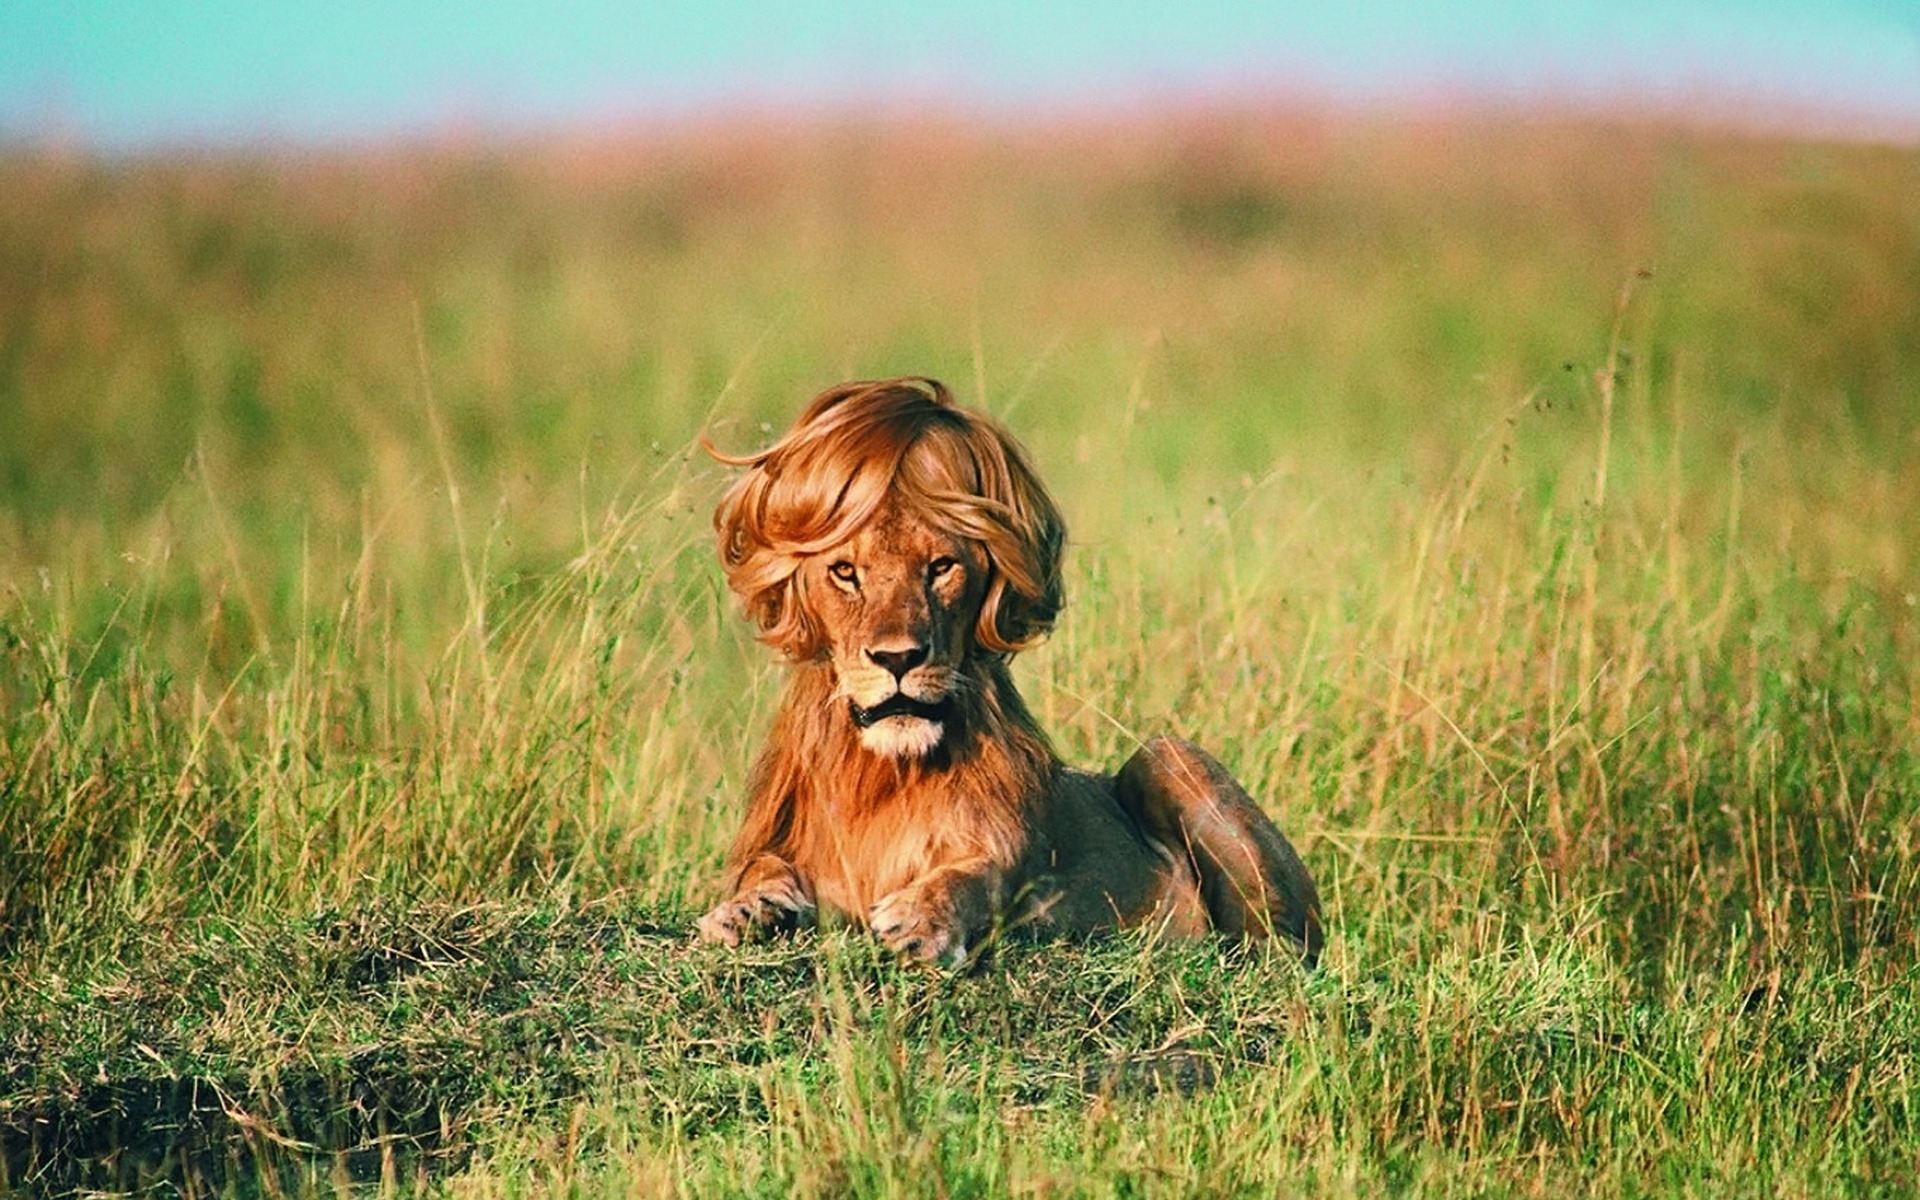 Lion with Wig